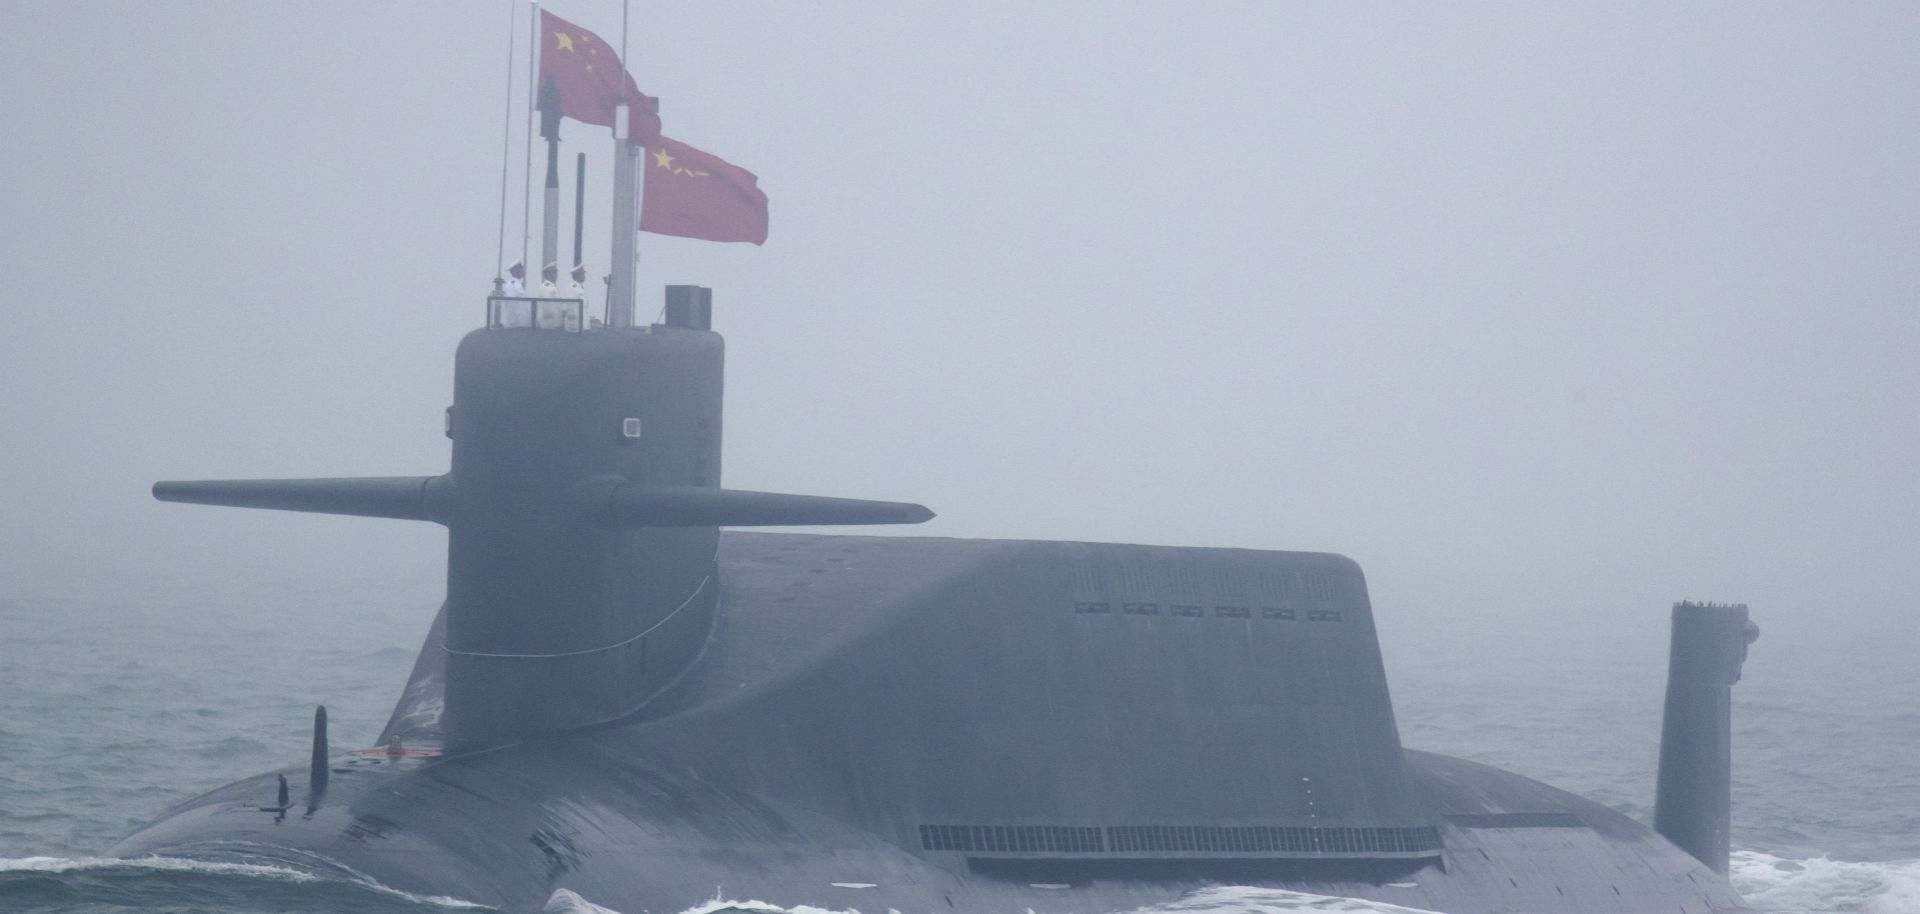 A new type 094A Jin-class nuclear submarine of the Chinese People's Liberation Army Navy participates in a naval parade to commemorate the 70th anniversary of the founding of China's PLA Navy in the sea near Qingdao, in eastern China's Shandong province on April 23.